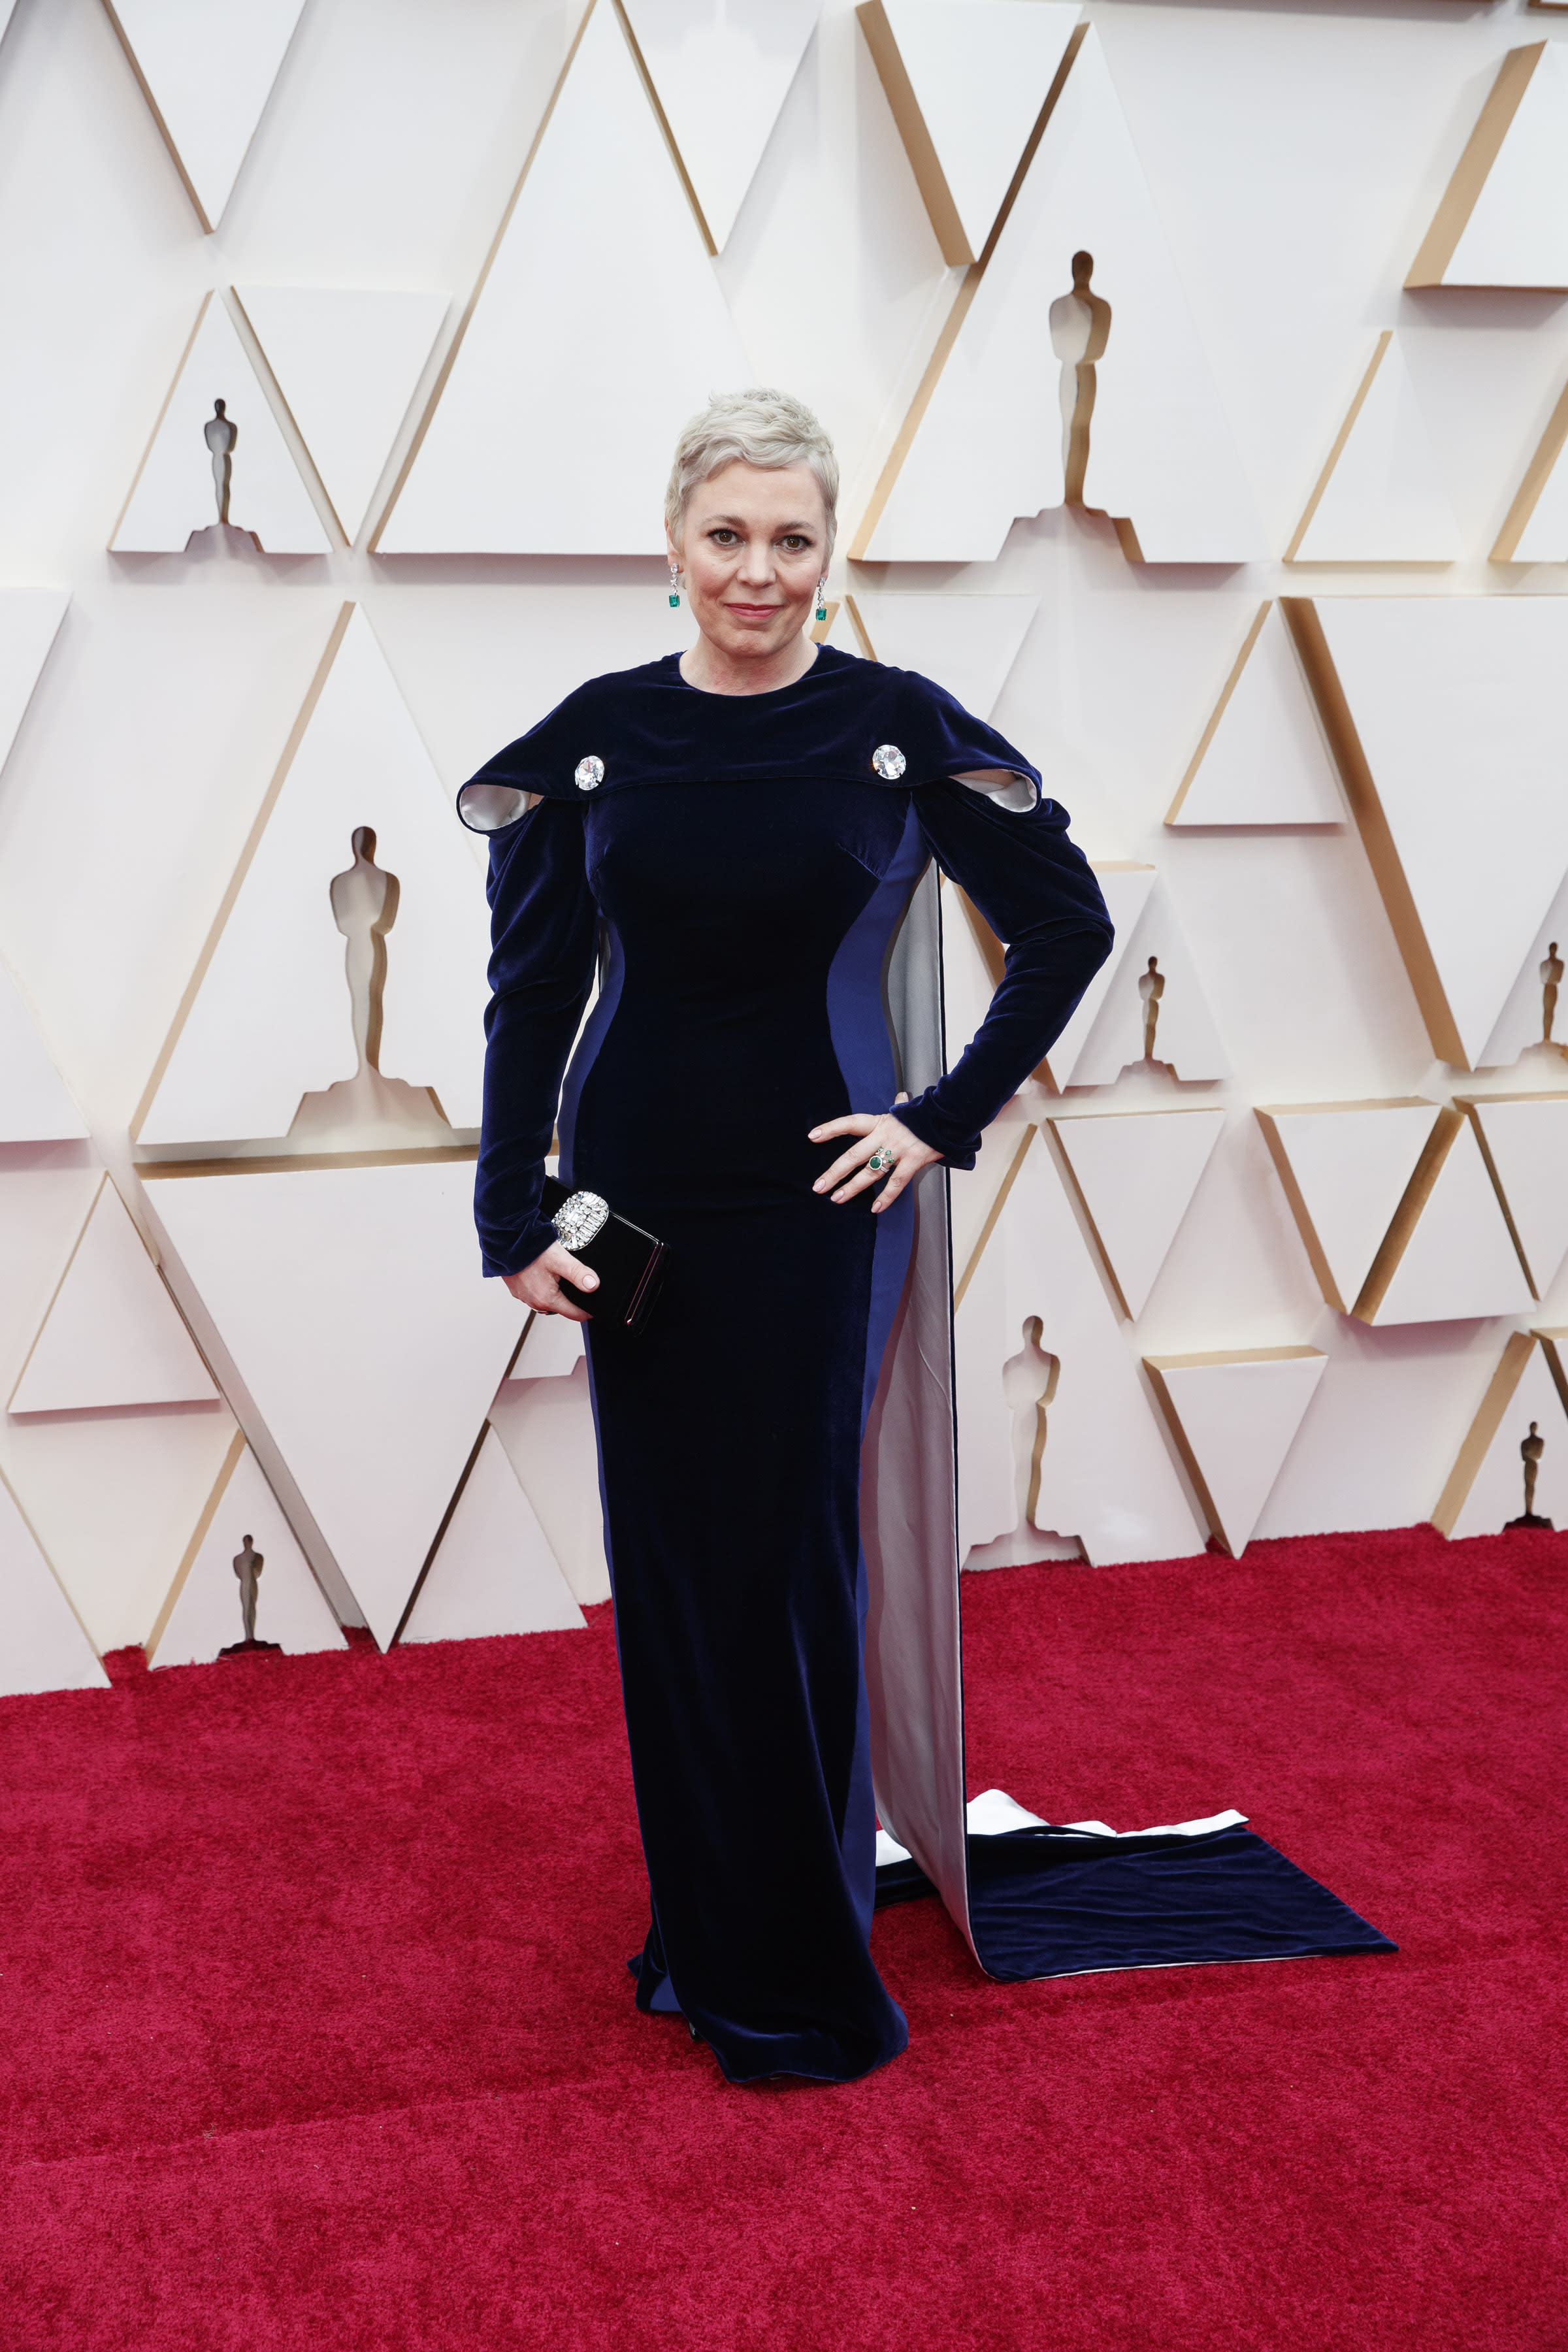 Olivia Colman sports new-look platinum blonde pixie crop at Oscars